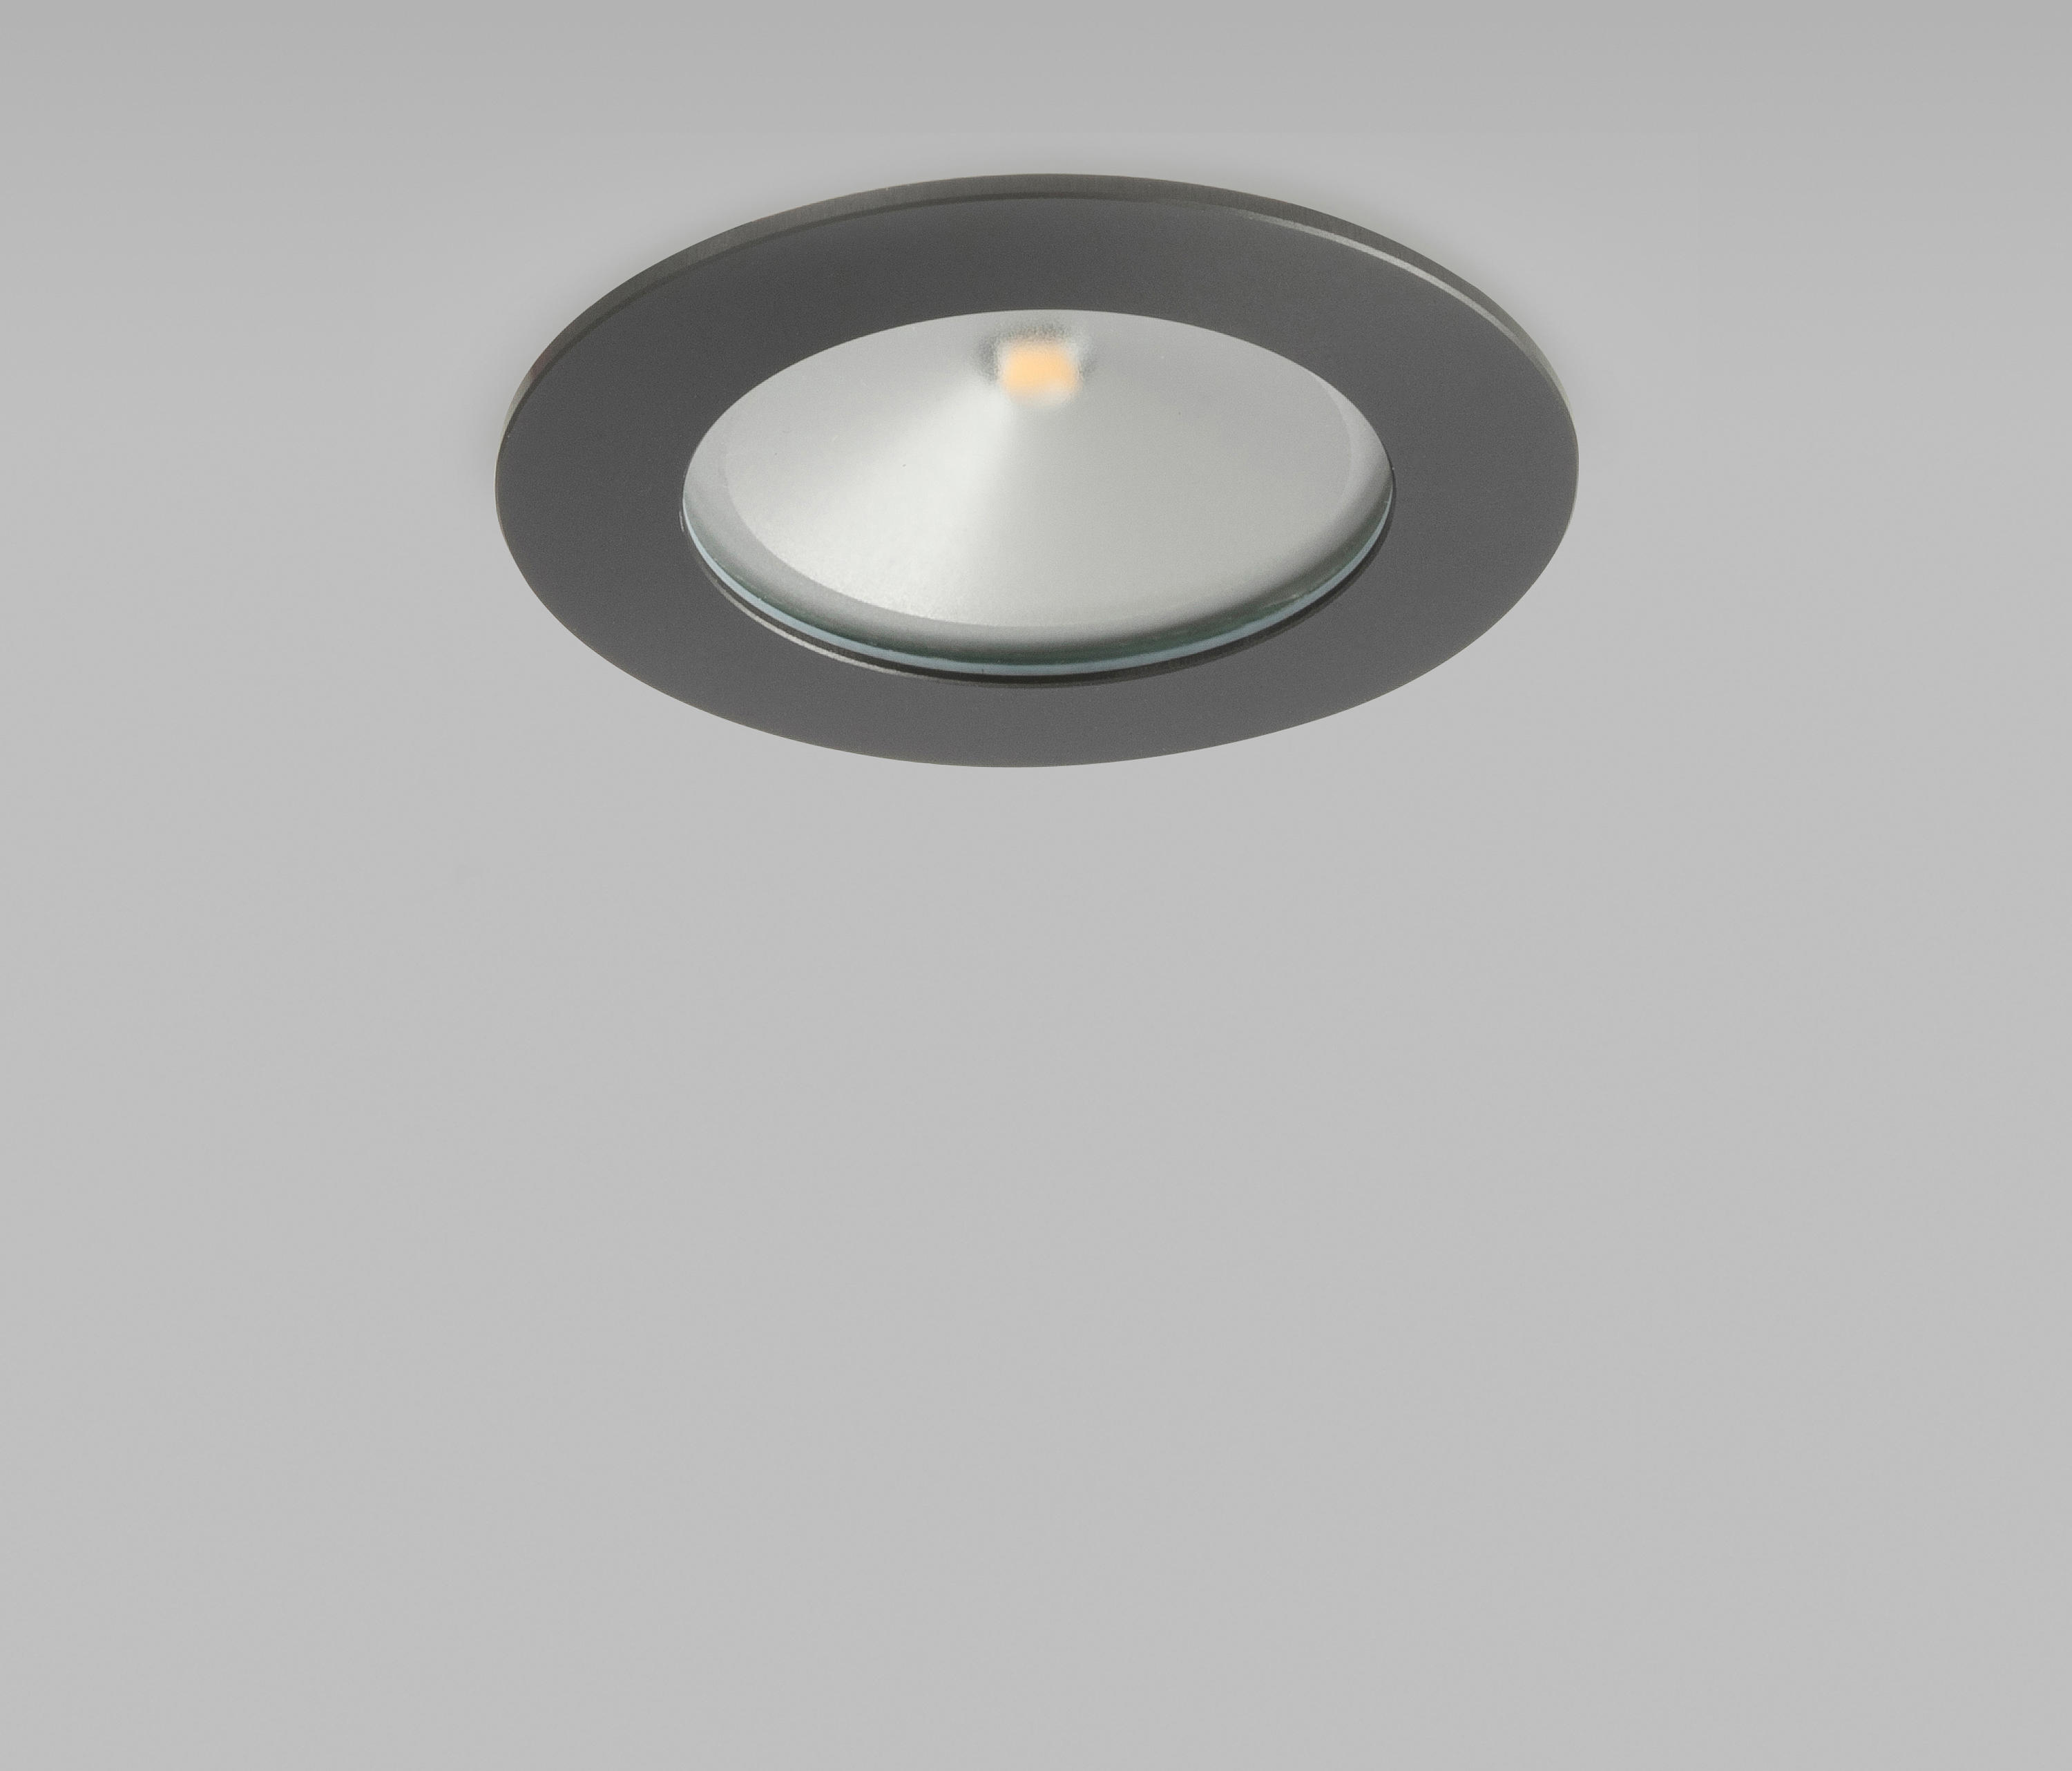 Etta Bronze 2700k Recessed Ceiling Lights From John Cullen